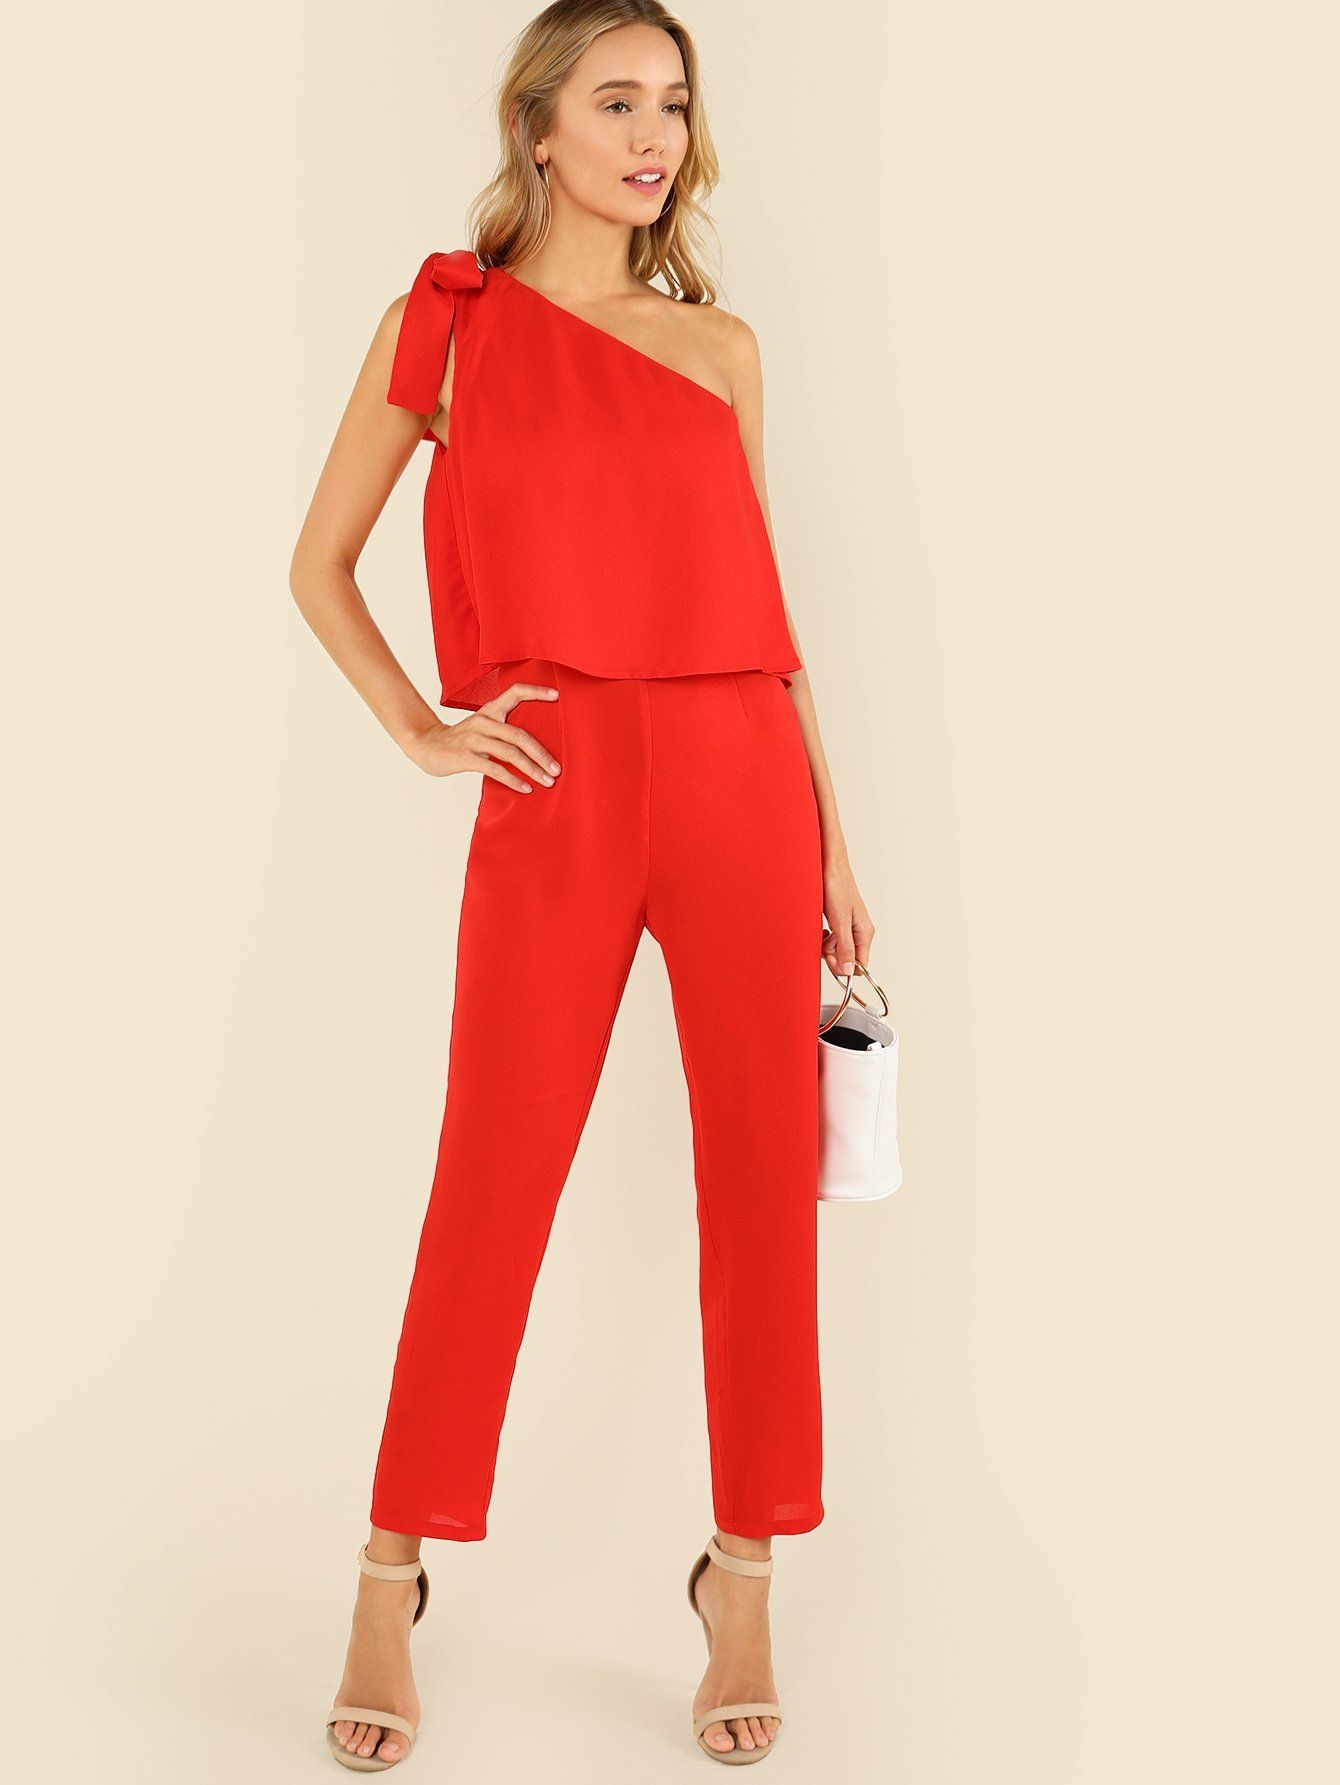 5aca343be055 Tied One Shoulder Ruffle Embellished Jumpsuit